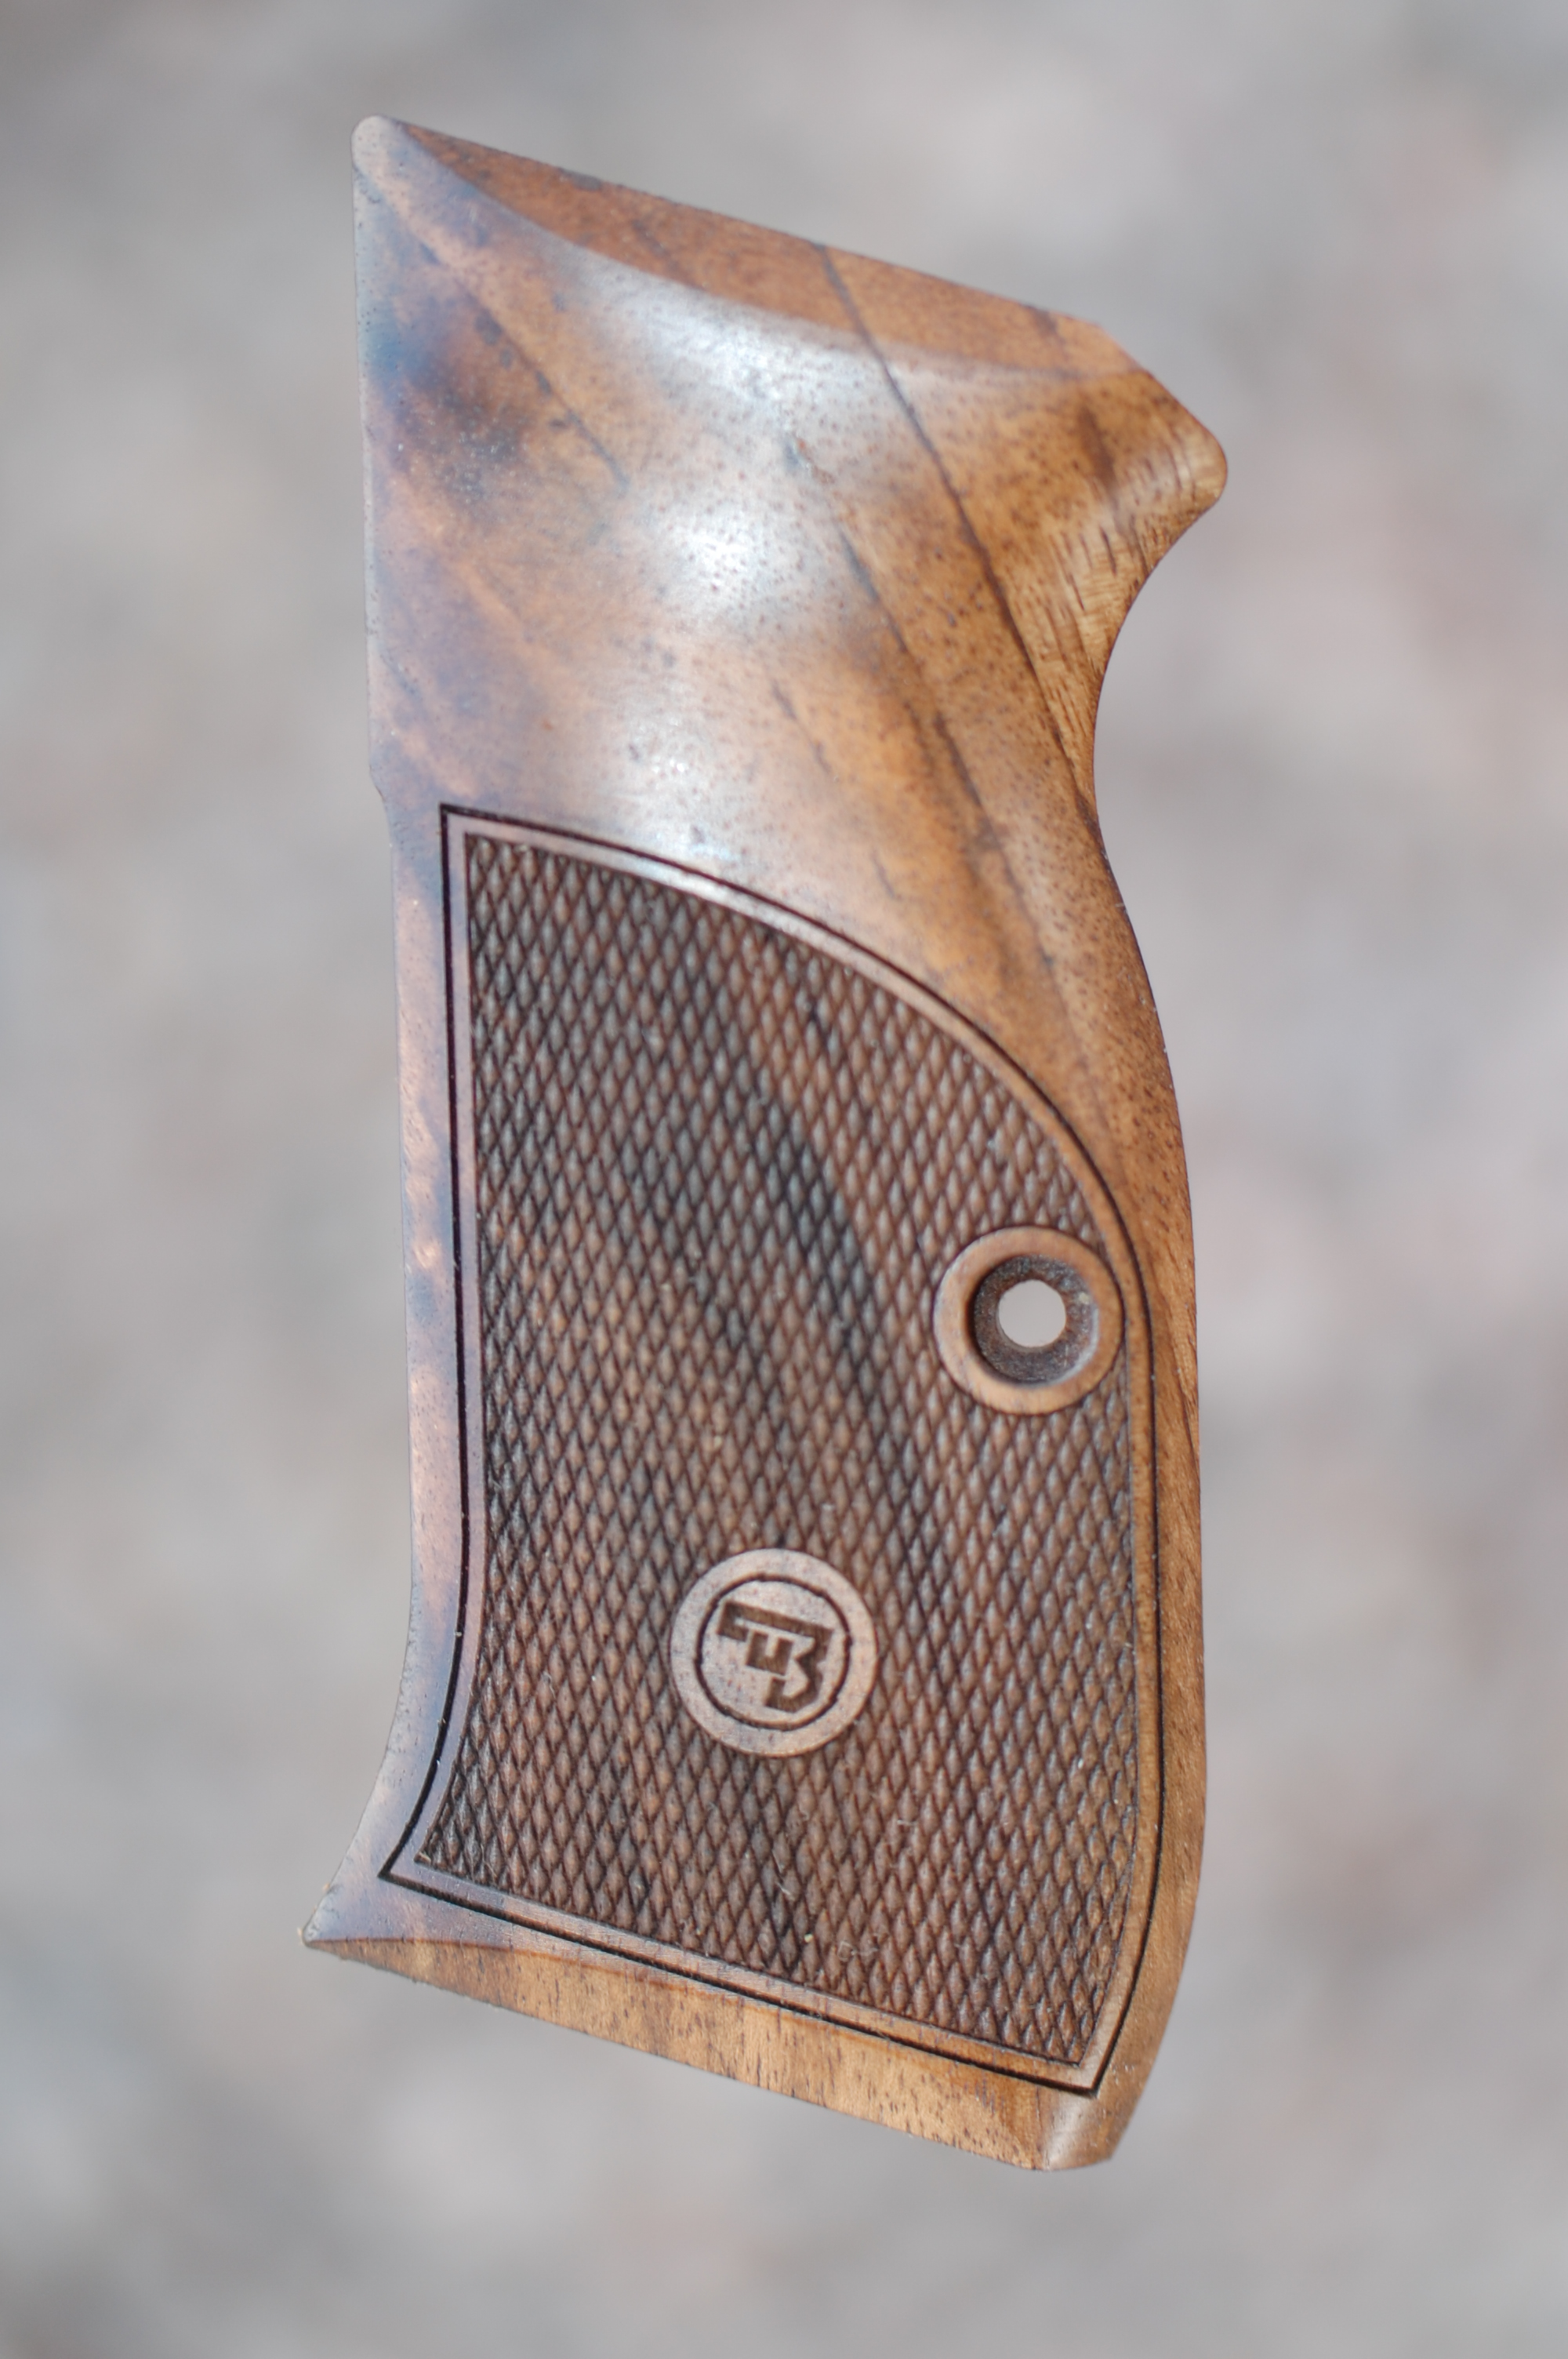 CZ 97 grips (checkered) - full size